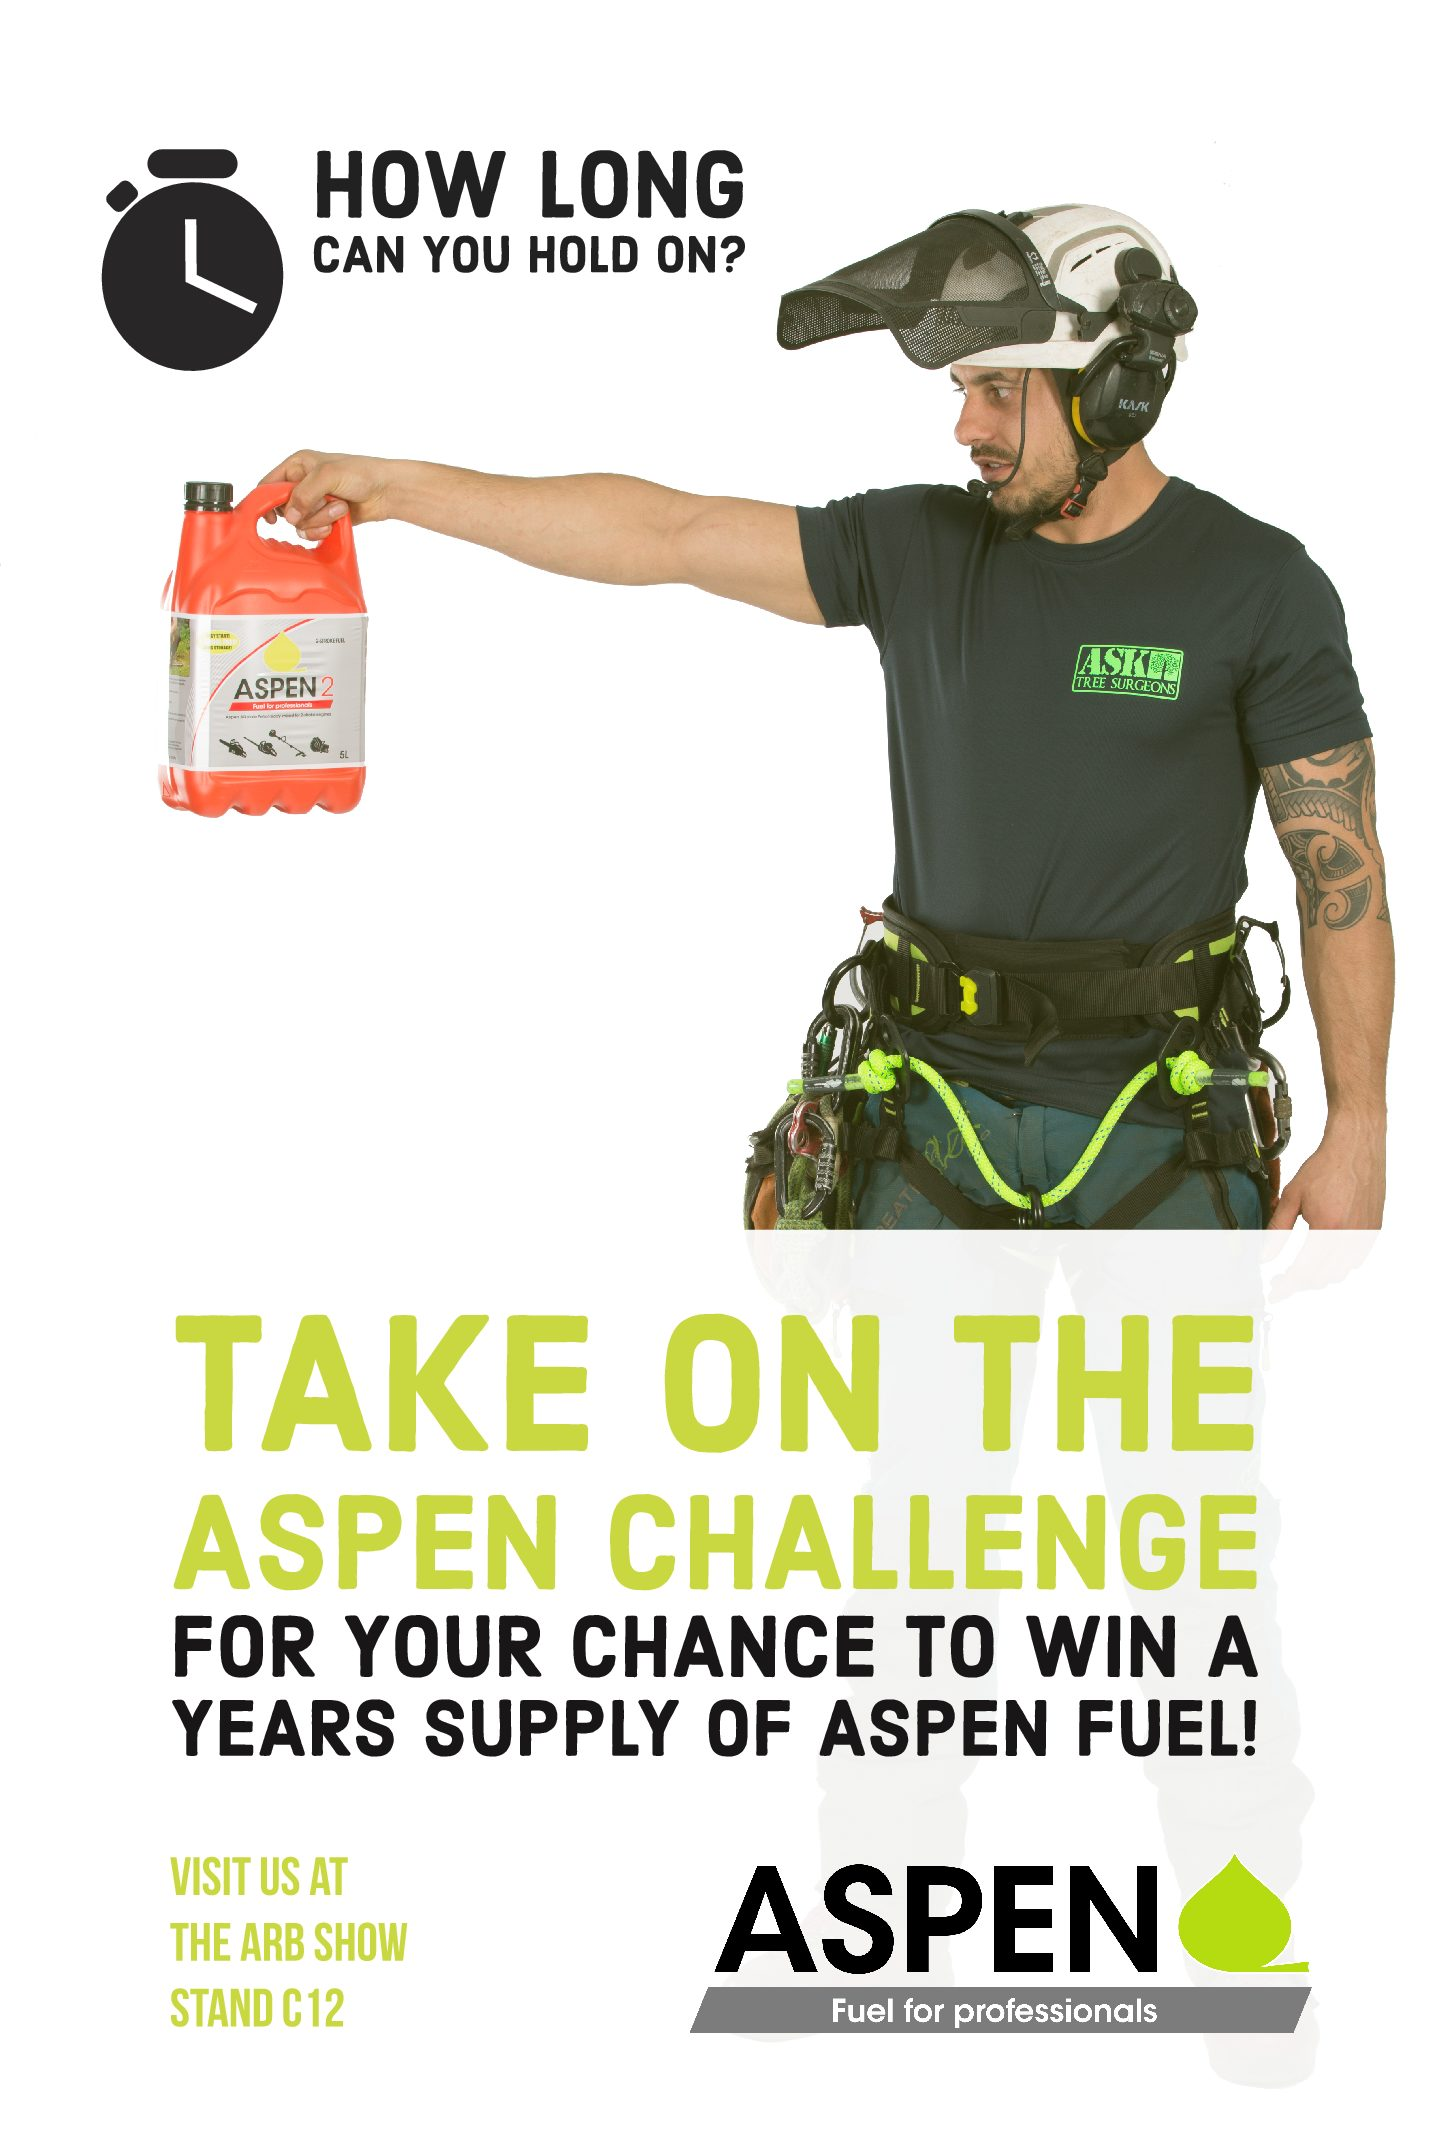 Take on the Aspen Challenge